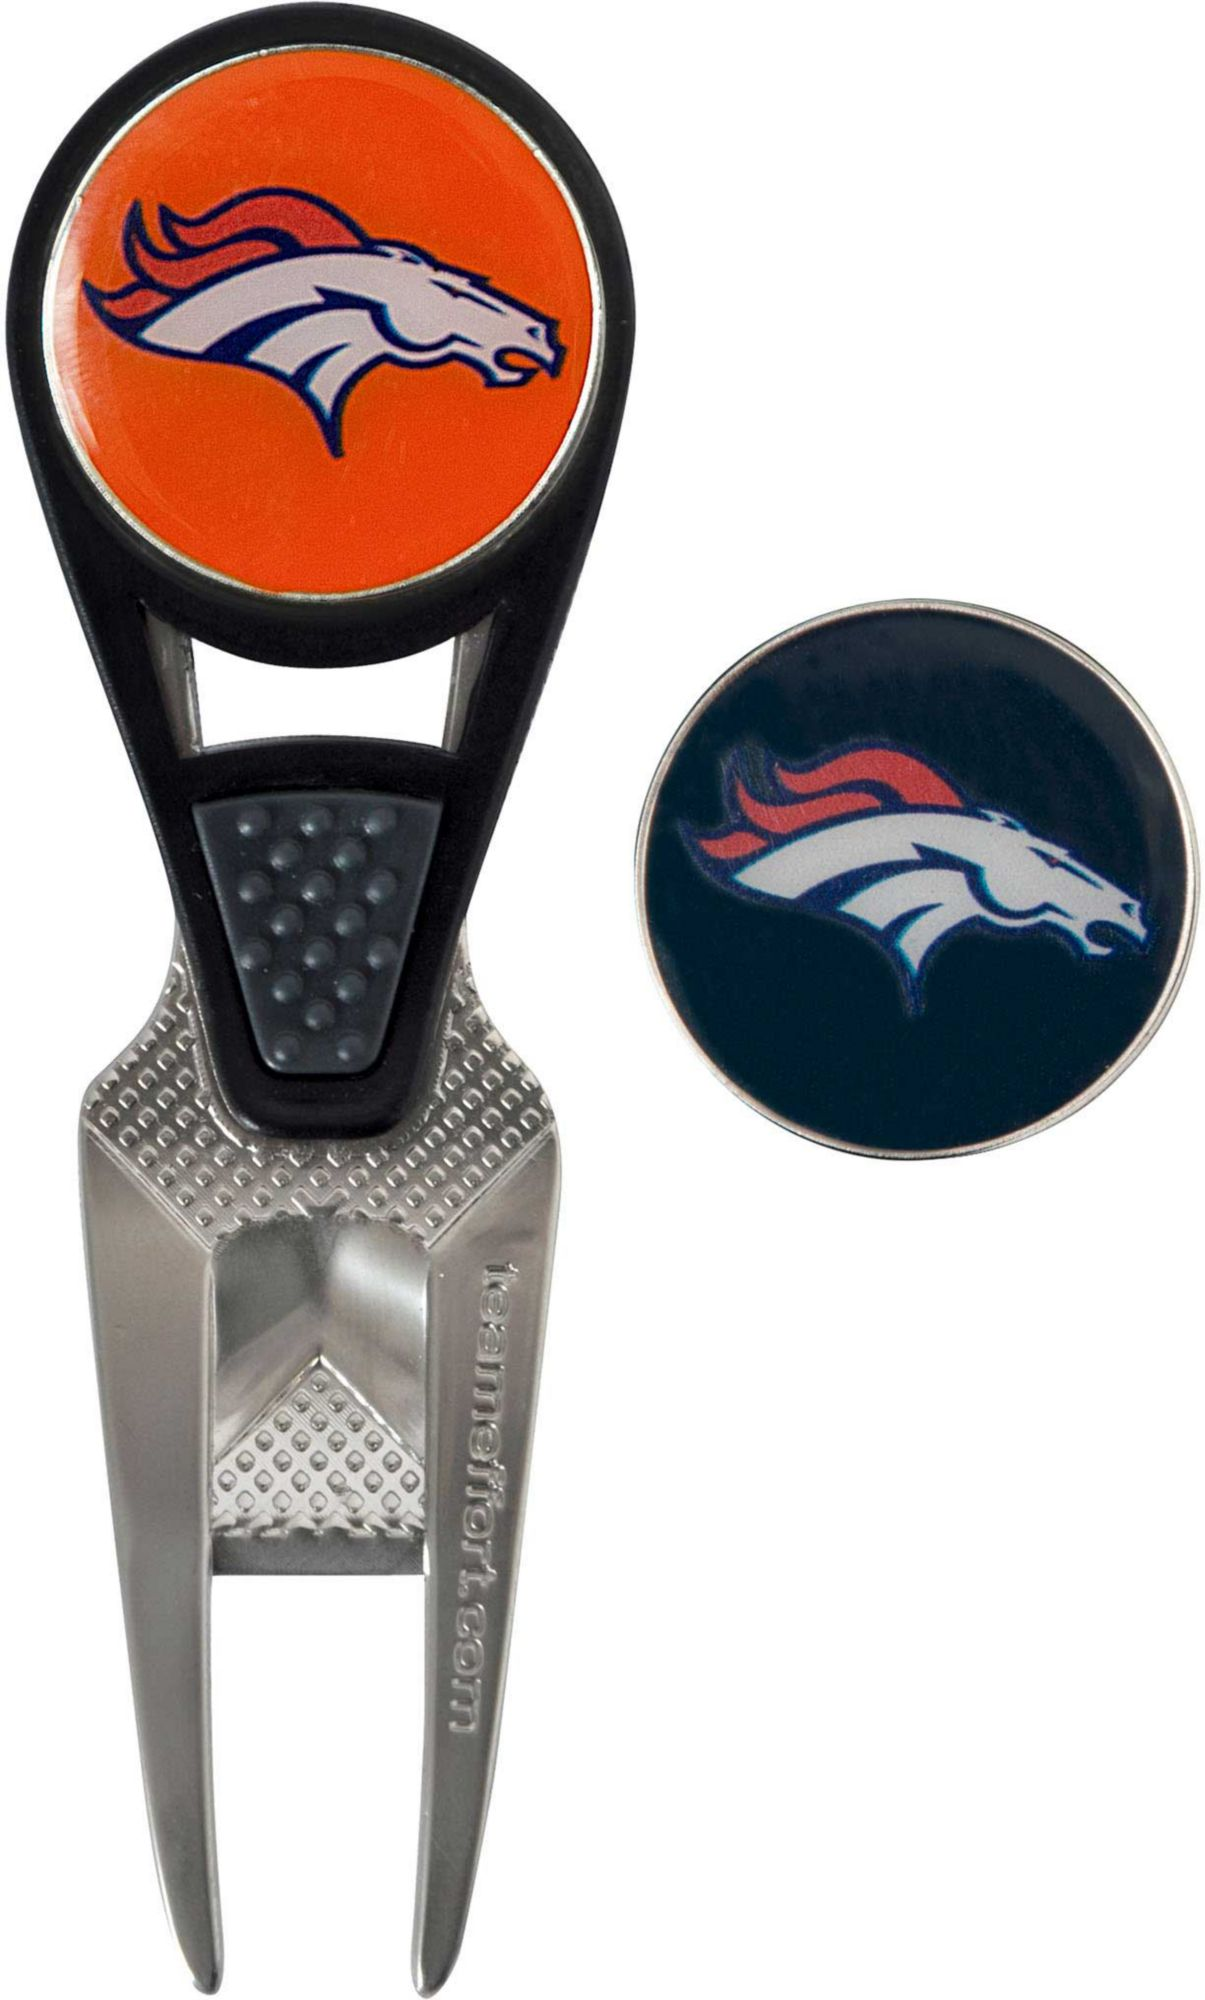 What is a Divot Tool and Ball Marker